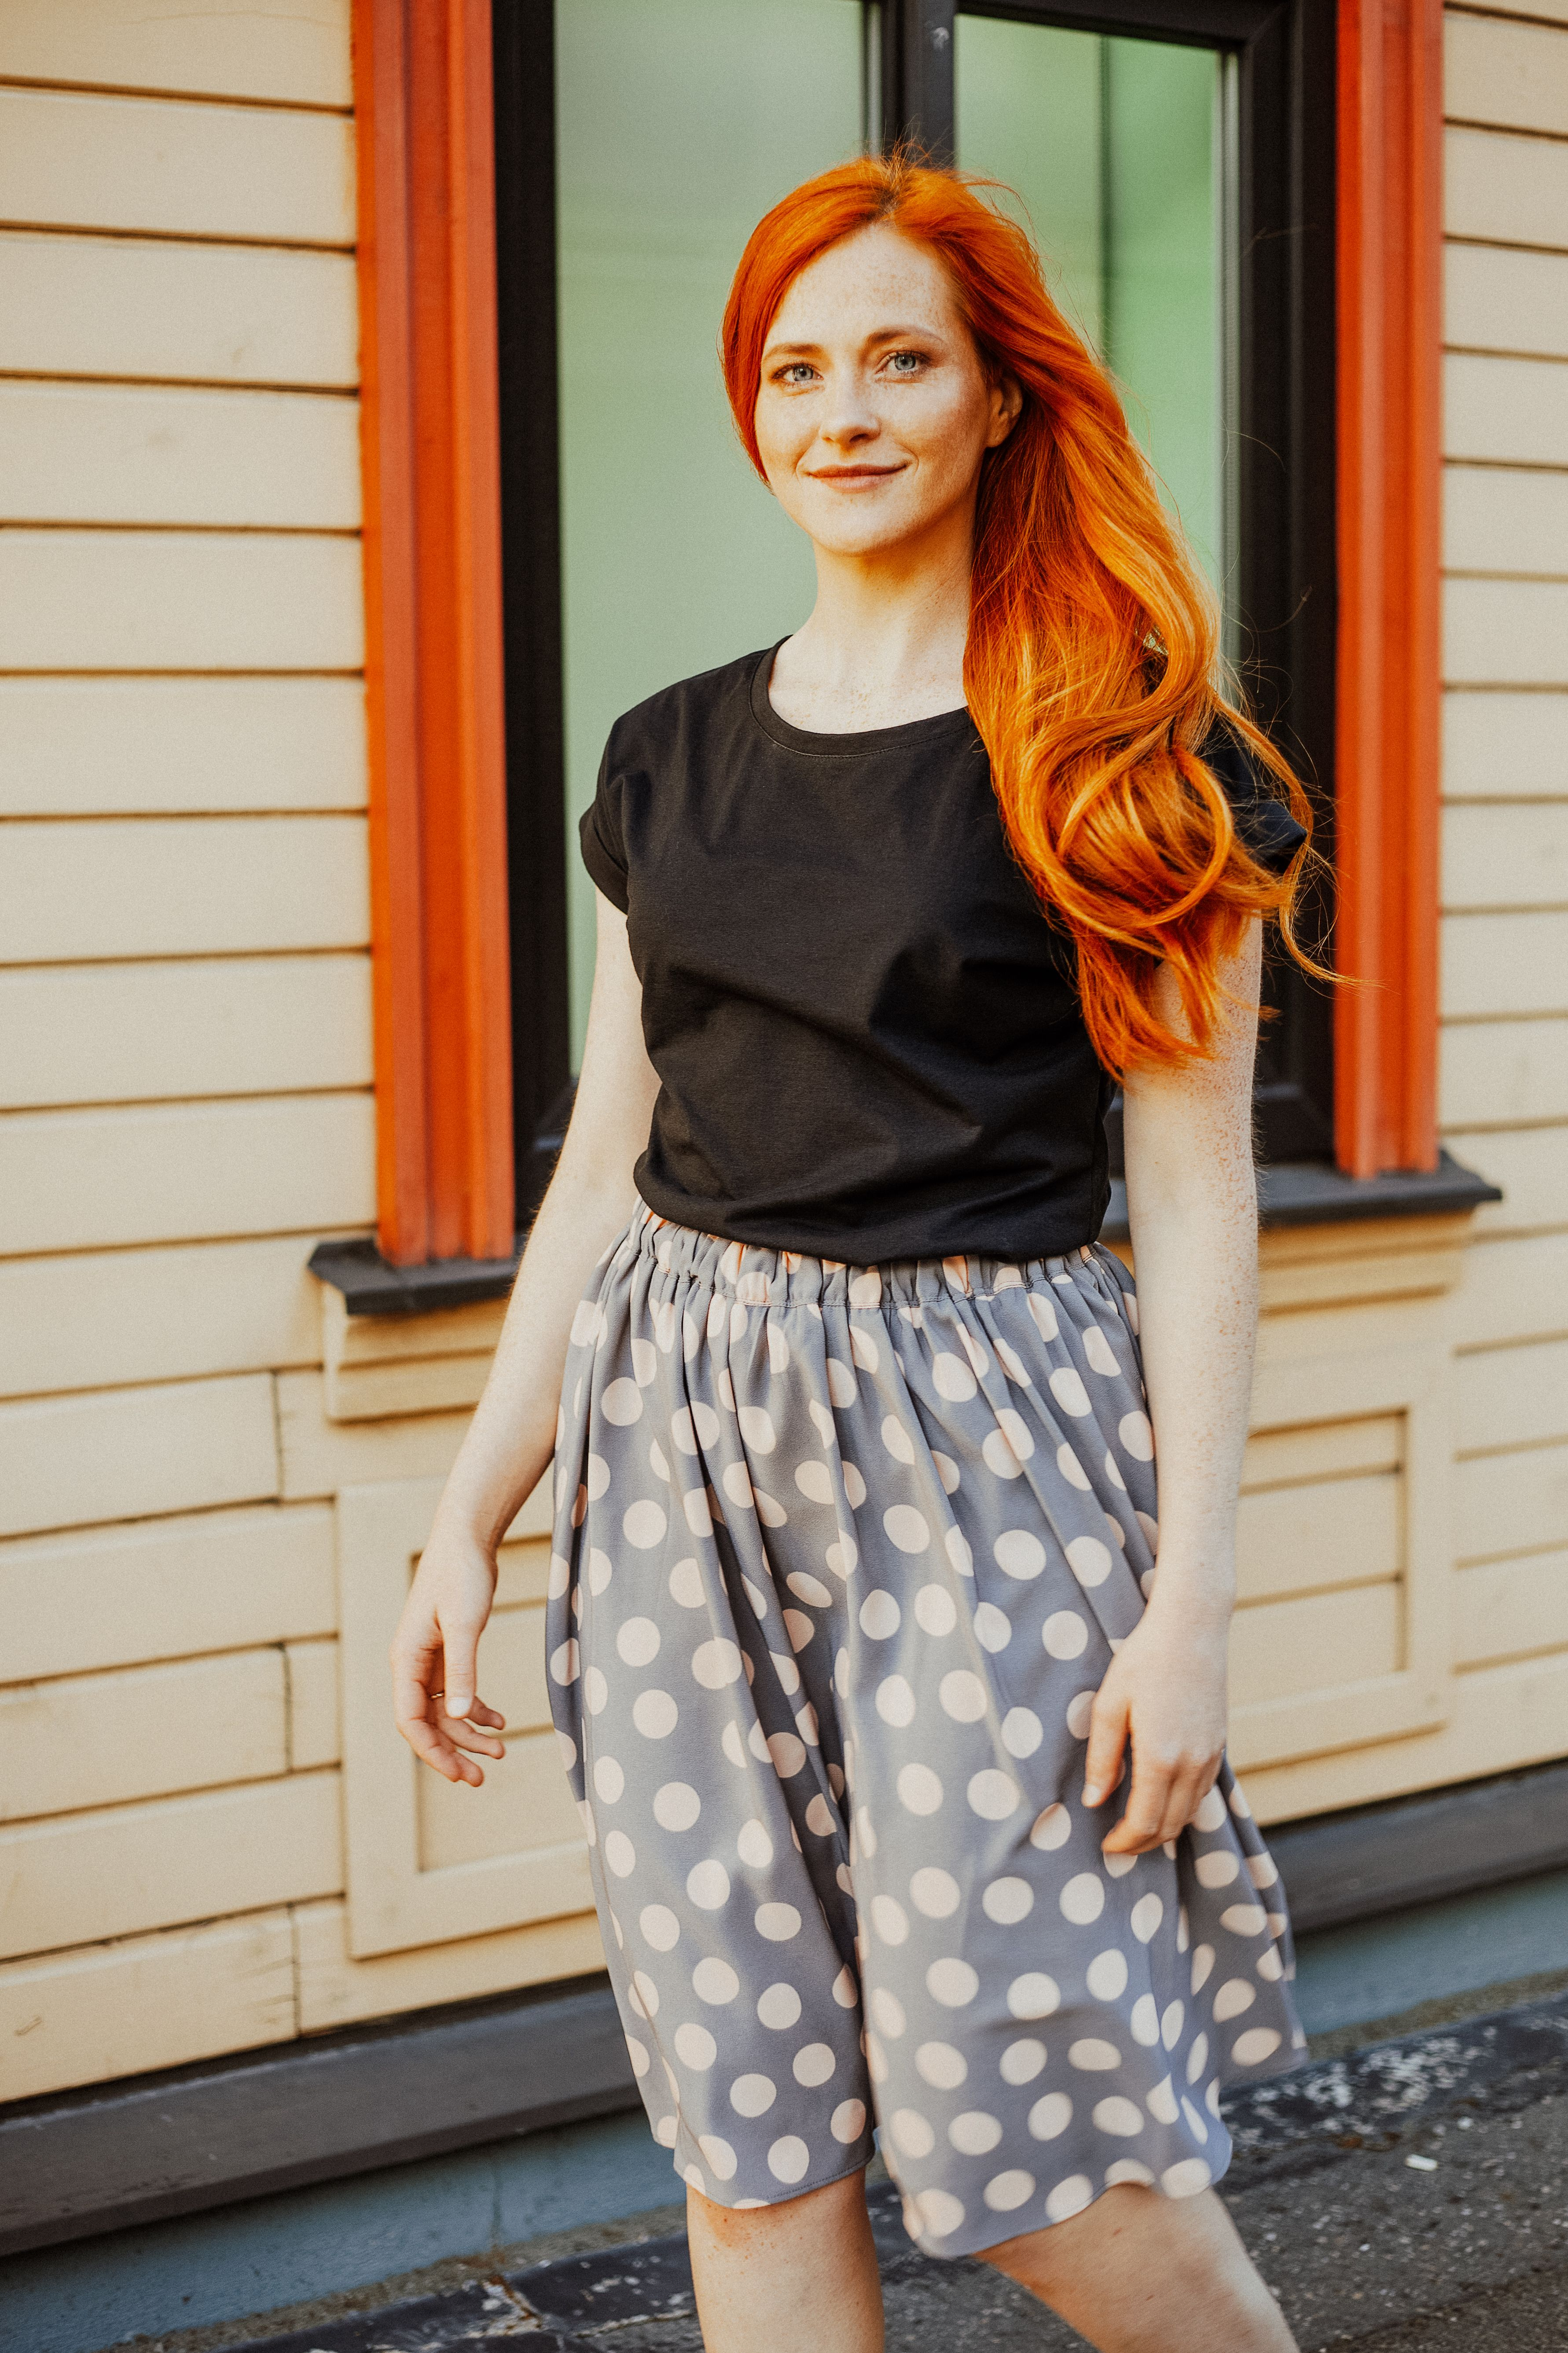 Polka dot skirt with pockets.Easy to style, suitable for all seasons. This skirt has an elastic waist and lining. Free shipping worldwide. #polkadotskirt #skirtoutfit #skirtwithpockets #summerskirt